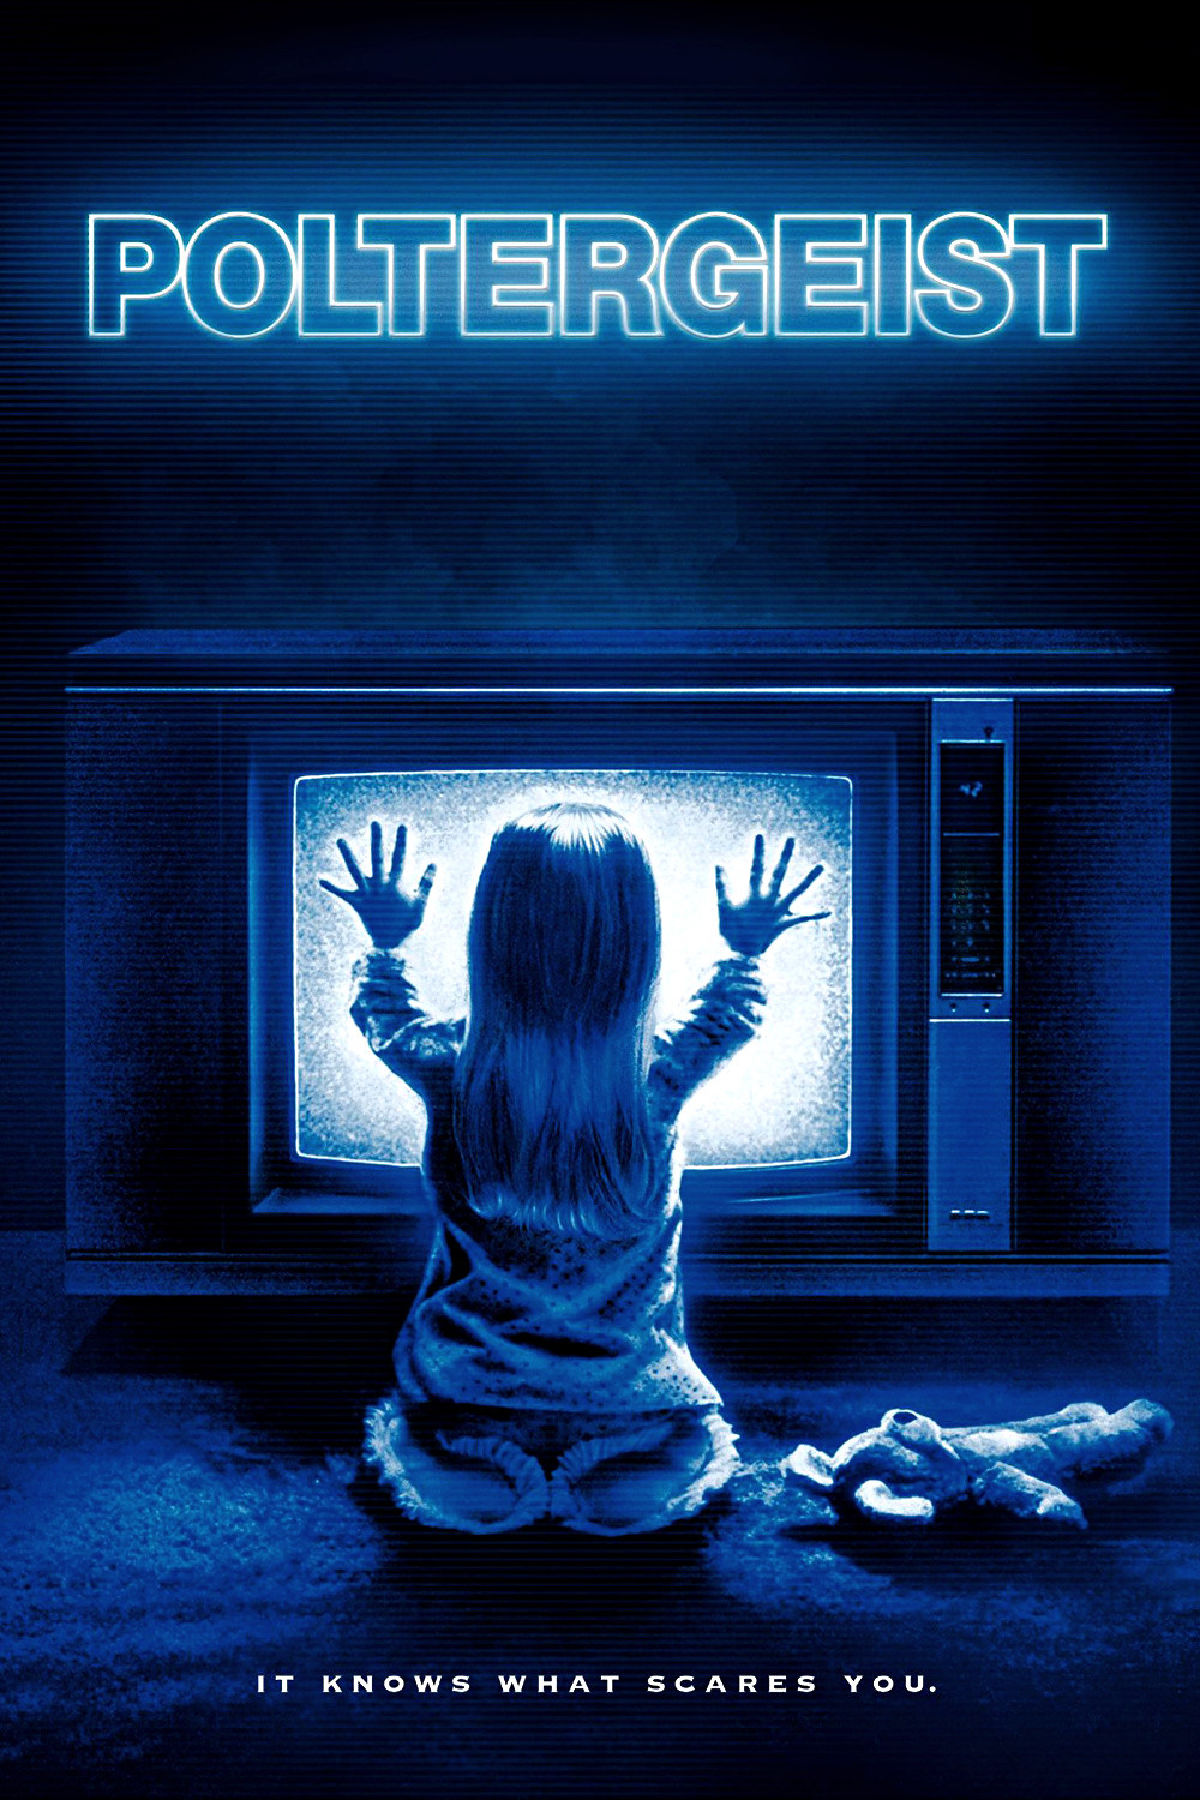 'Poltergeist' movie poster